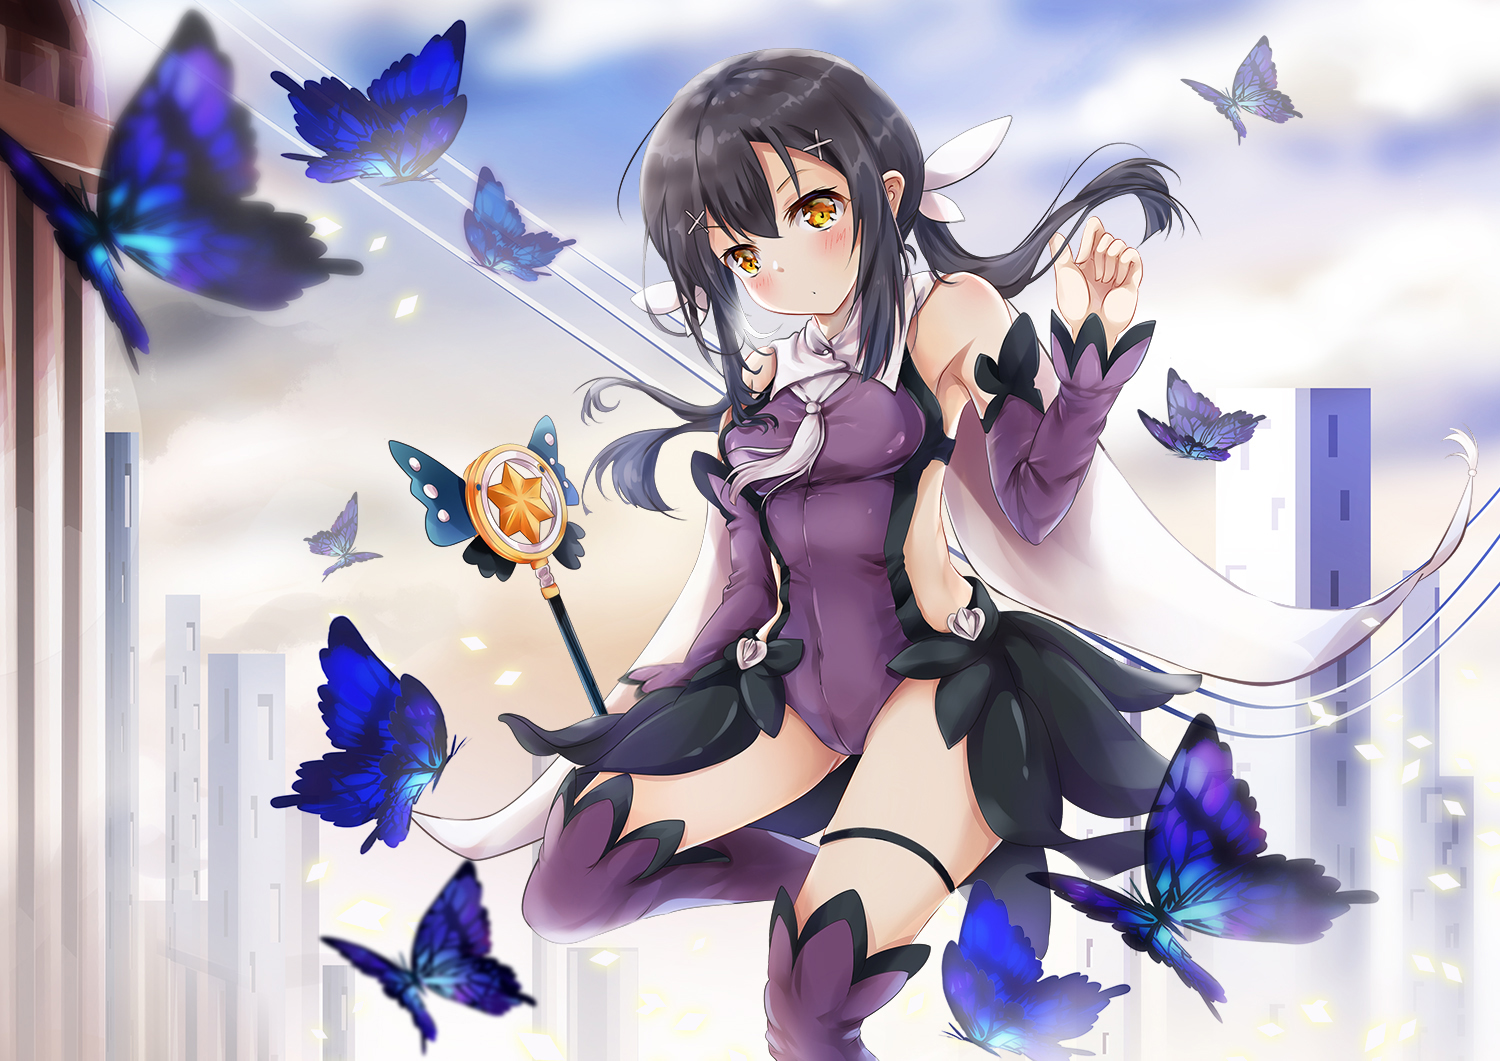 black_hair blush bodysuit breasts butterfly fate/kaleid_liner_prisma_illya fate_(series) garter long_hair miyu_edelfelt mutang orange_eyes skintight thighhighs wand